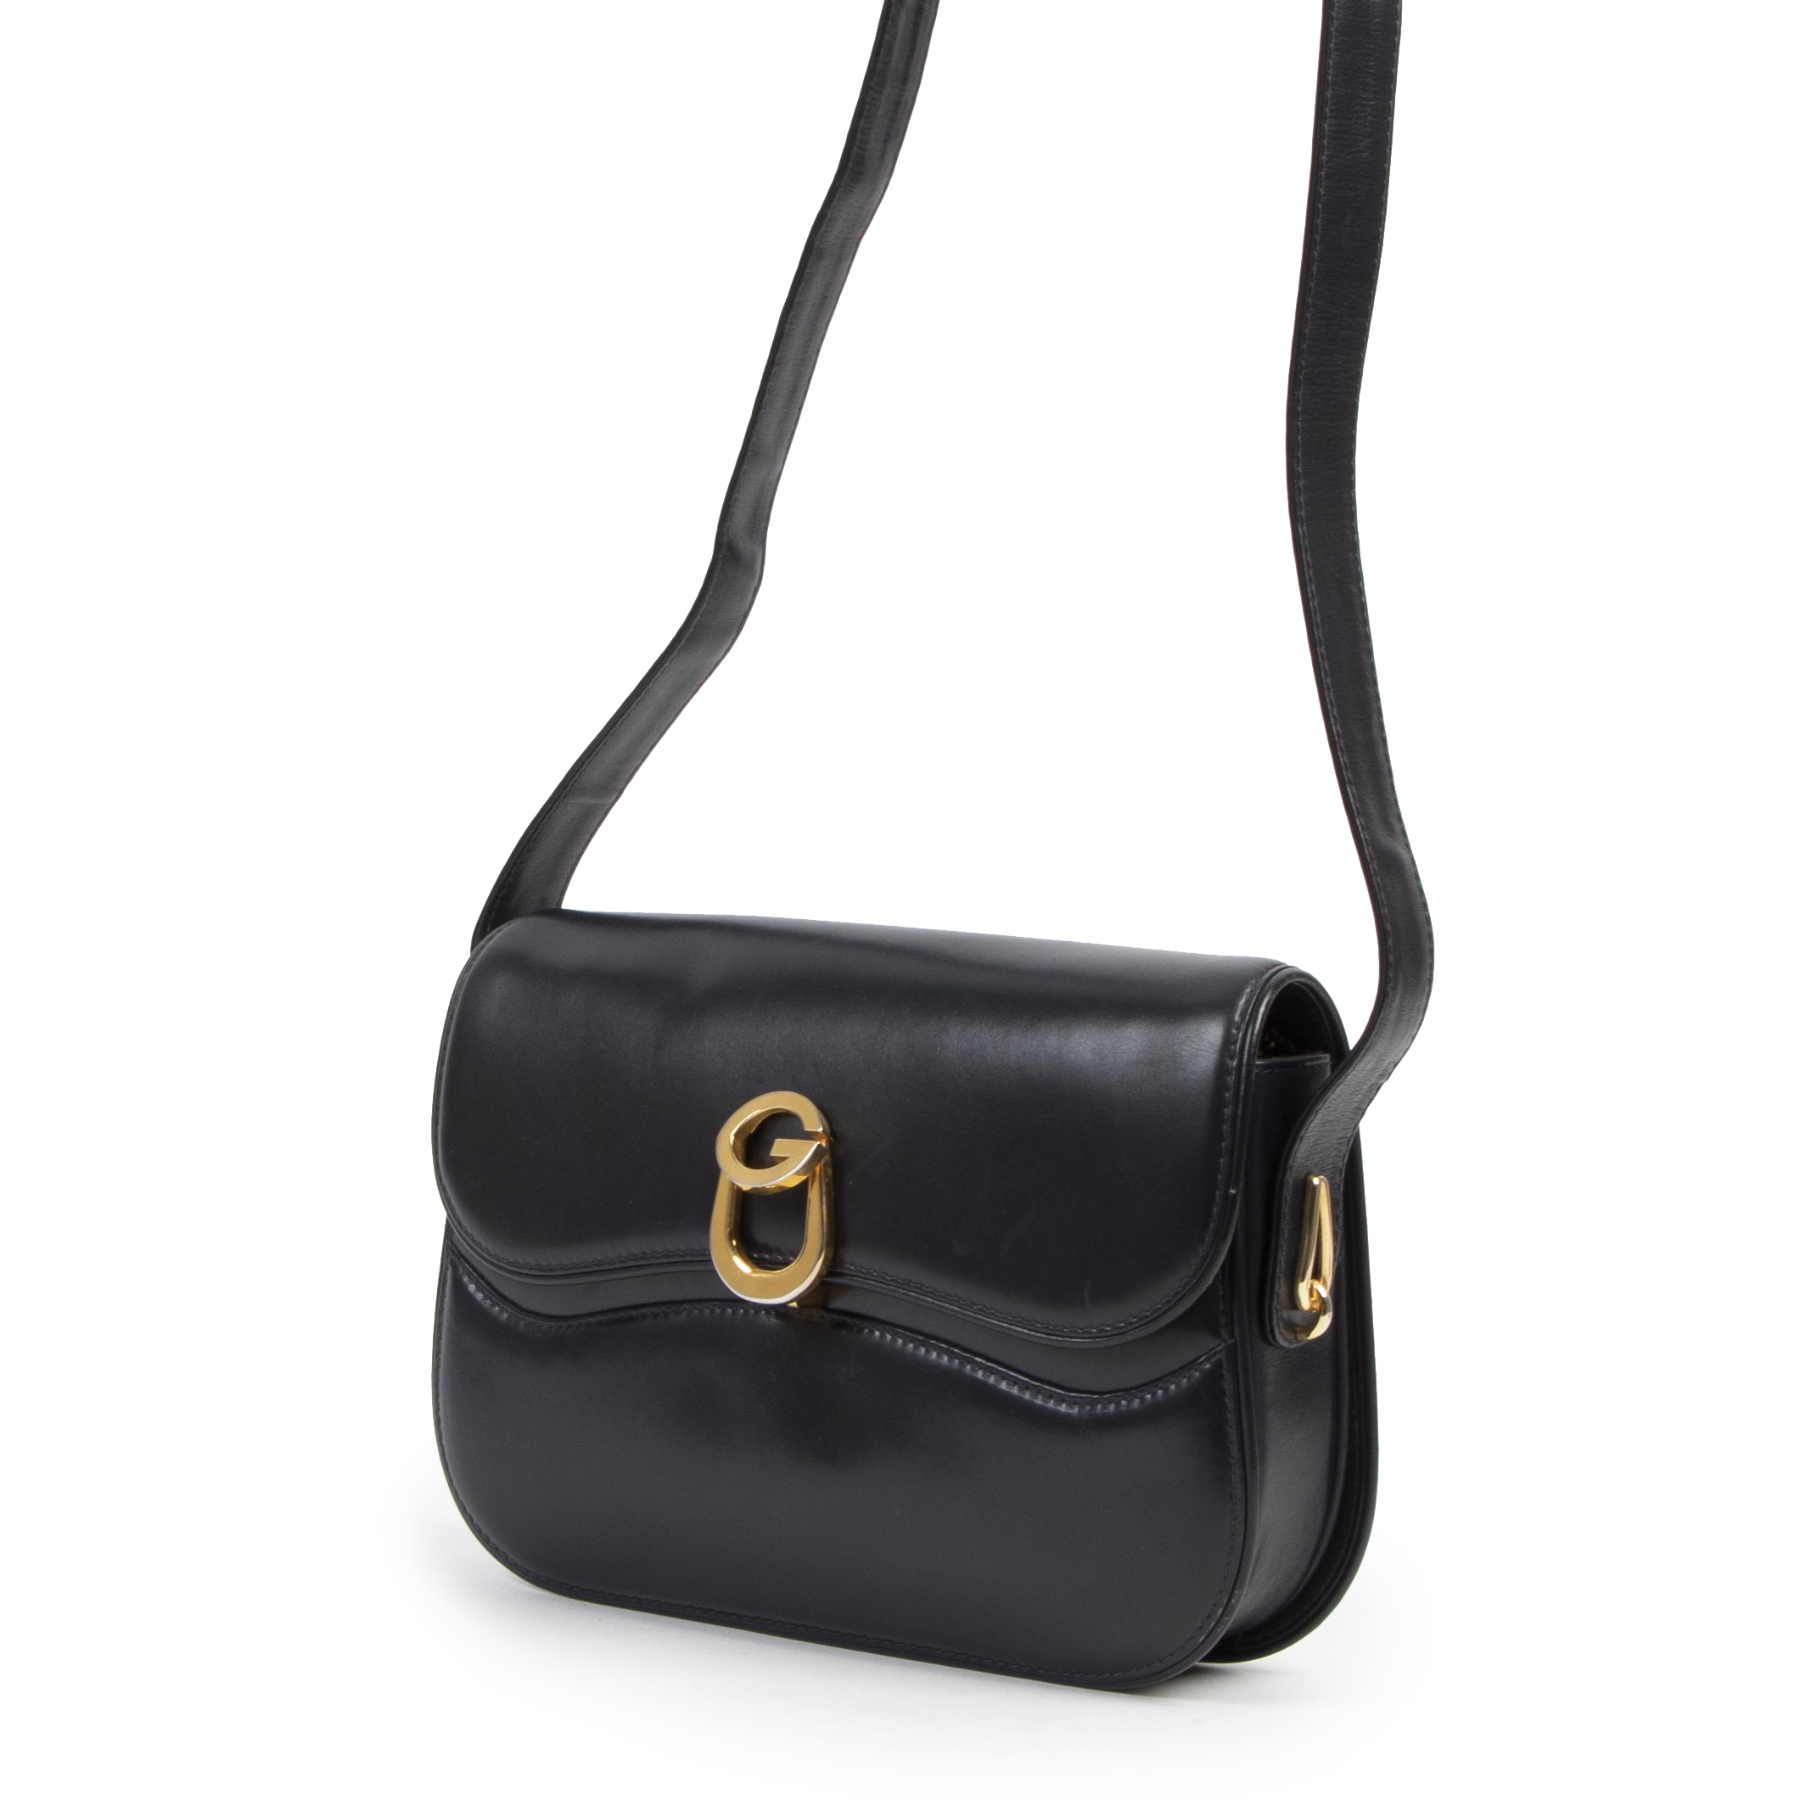 Authentieke tweedehands vintage Gucci Dark Blue Leather G Clasp Shoulder Bag koop online webshop LabelLOV